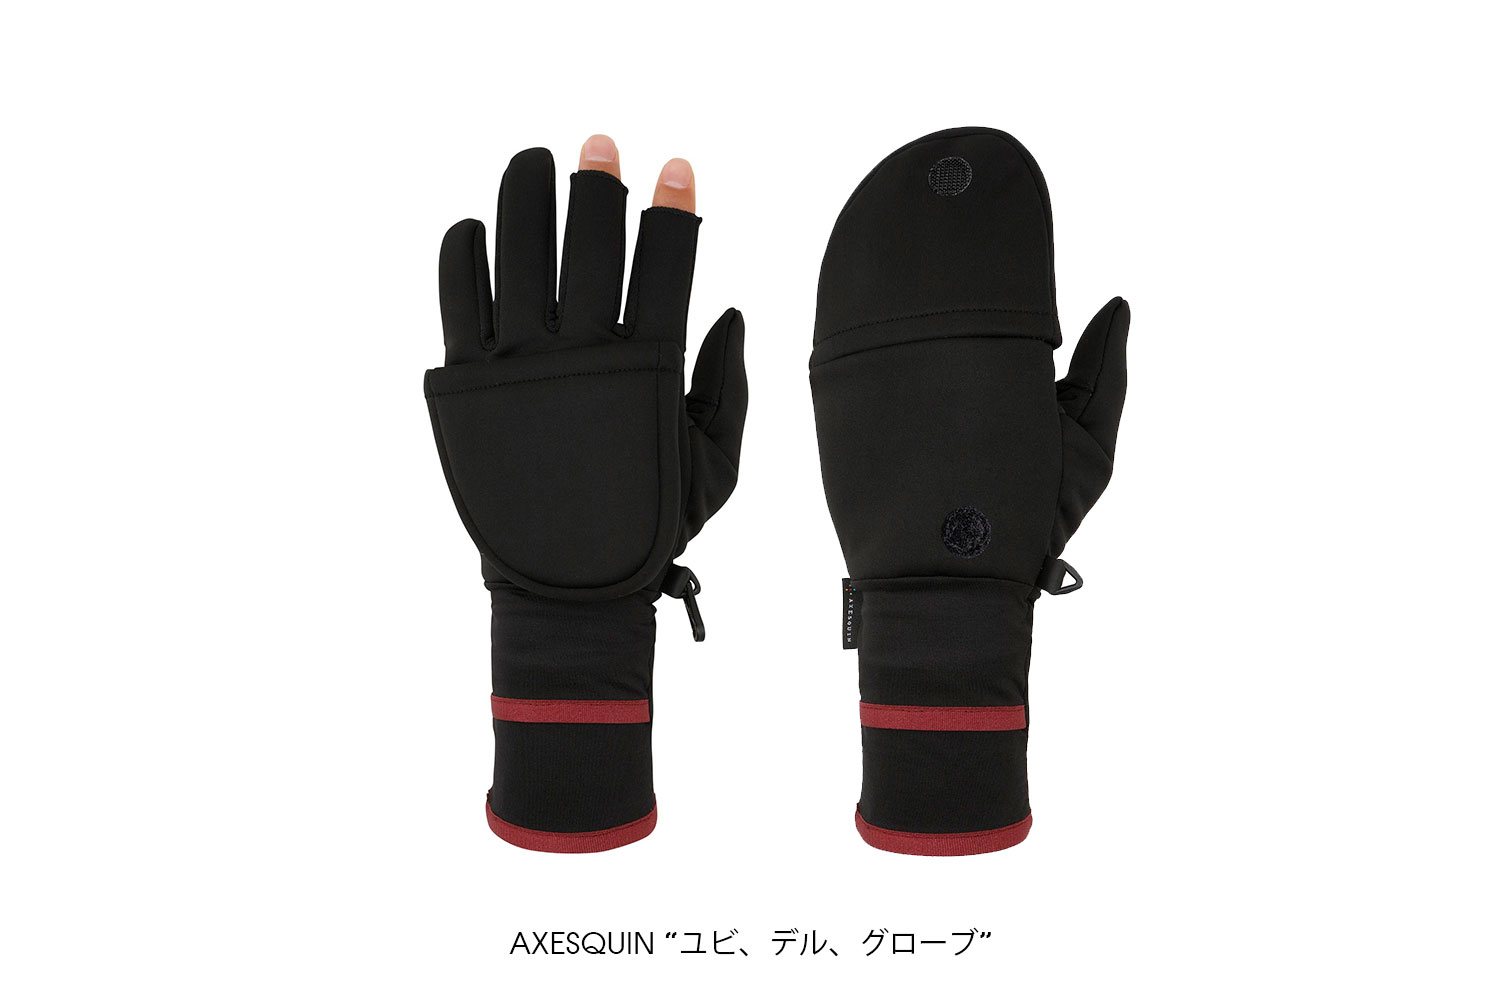 """AXESQUIN """"ユビ、デル、グローブ"""""""